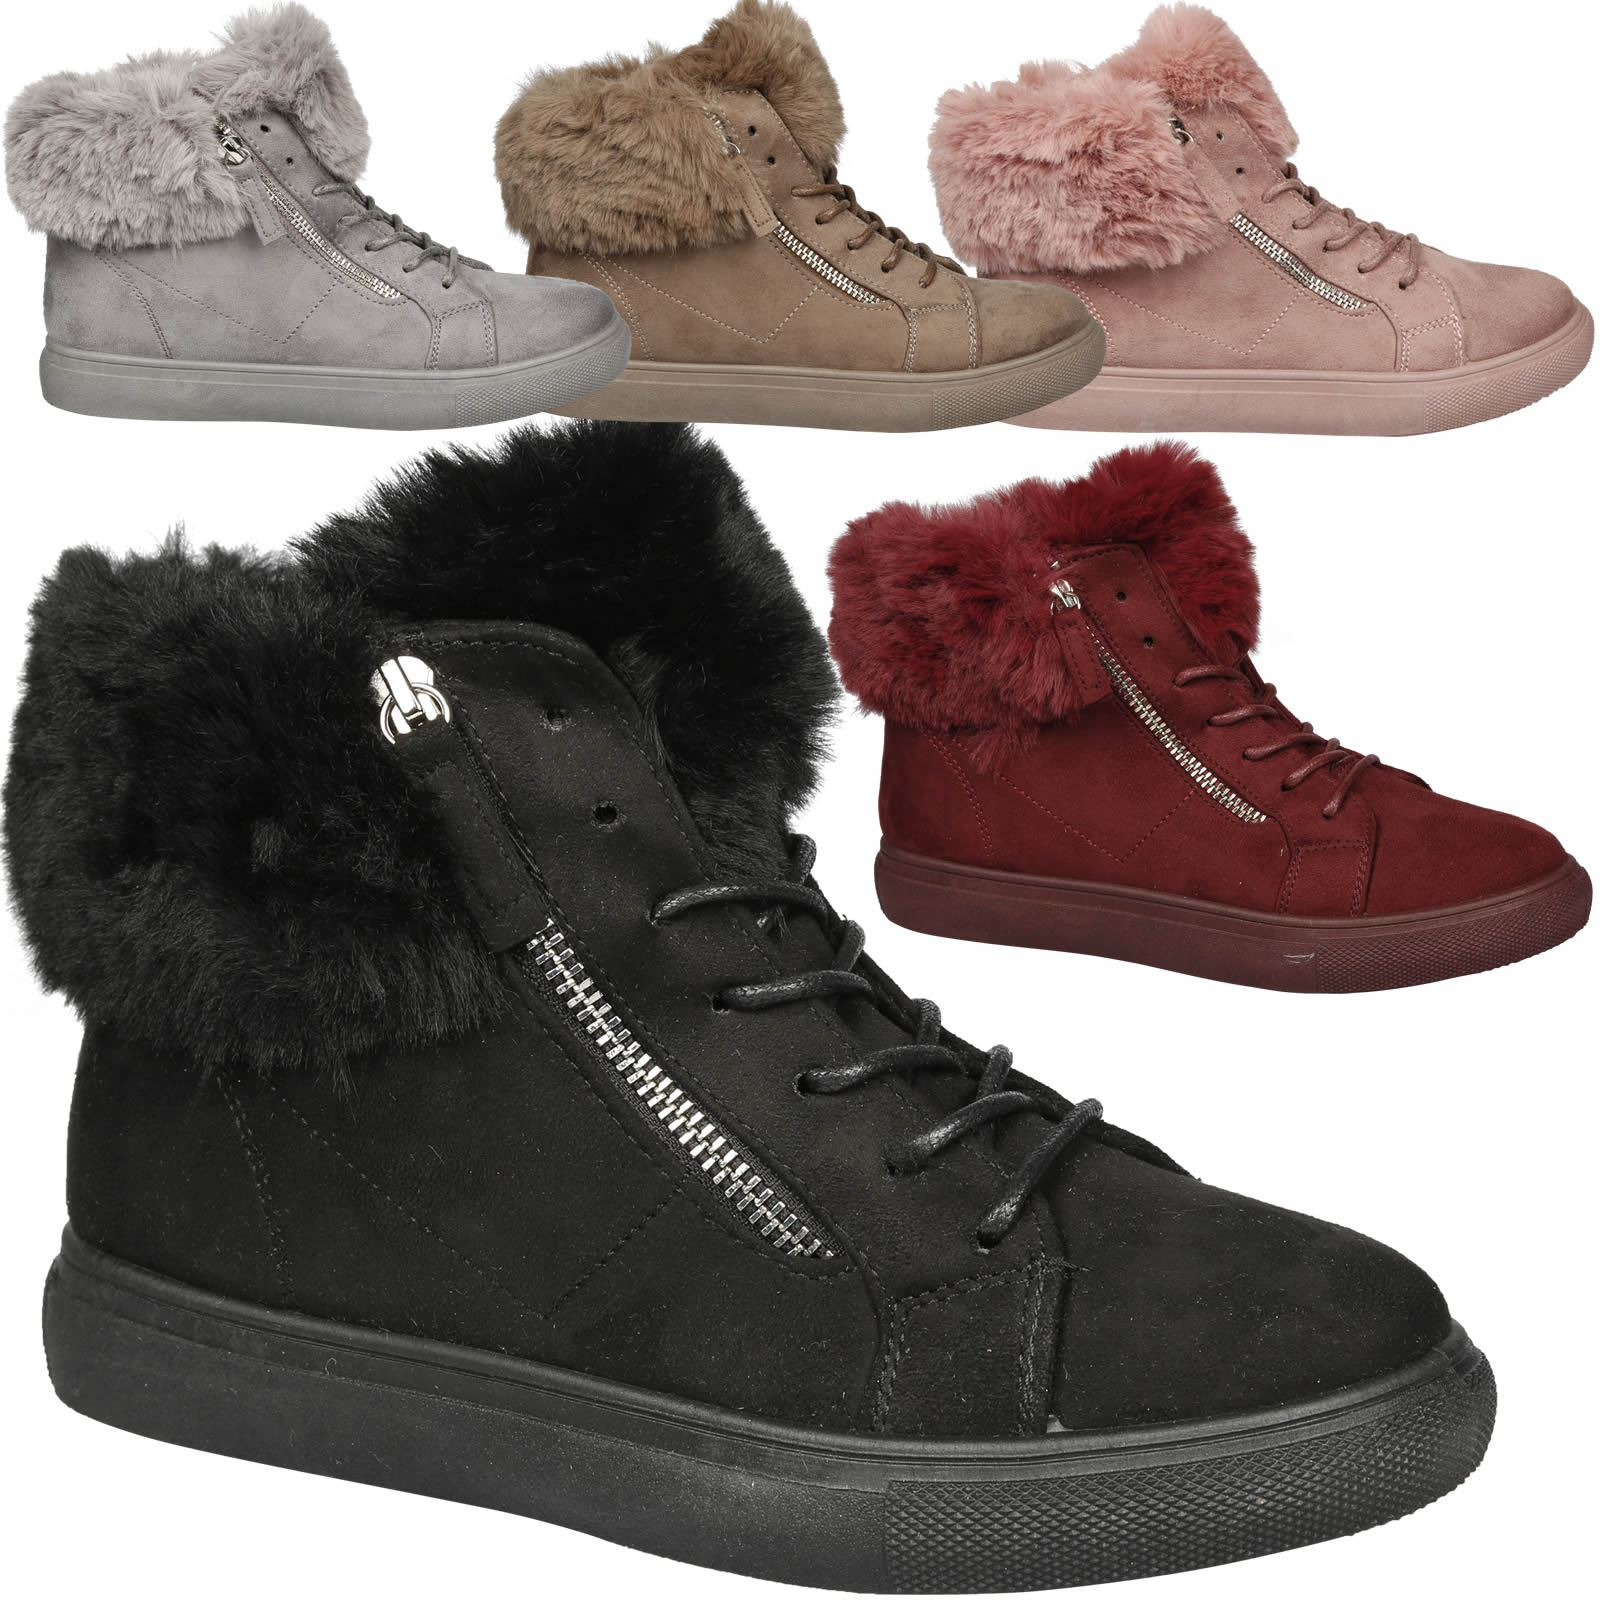 9abe5e6da0f988 Details about Kinsley Womens Flat Platform Lace Up Zip Detail Fur Lined Ankle  Boots Ladies